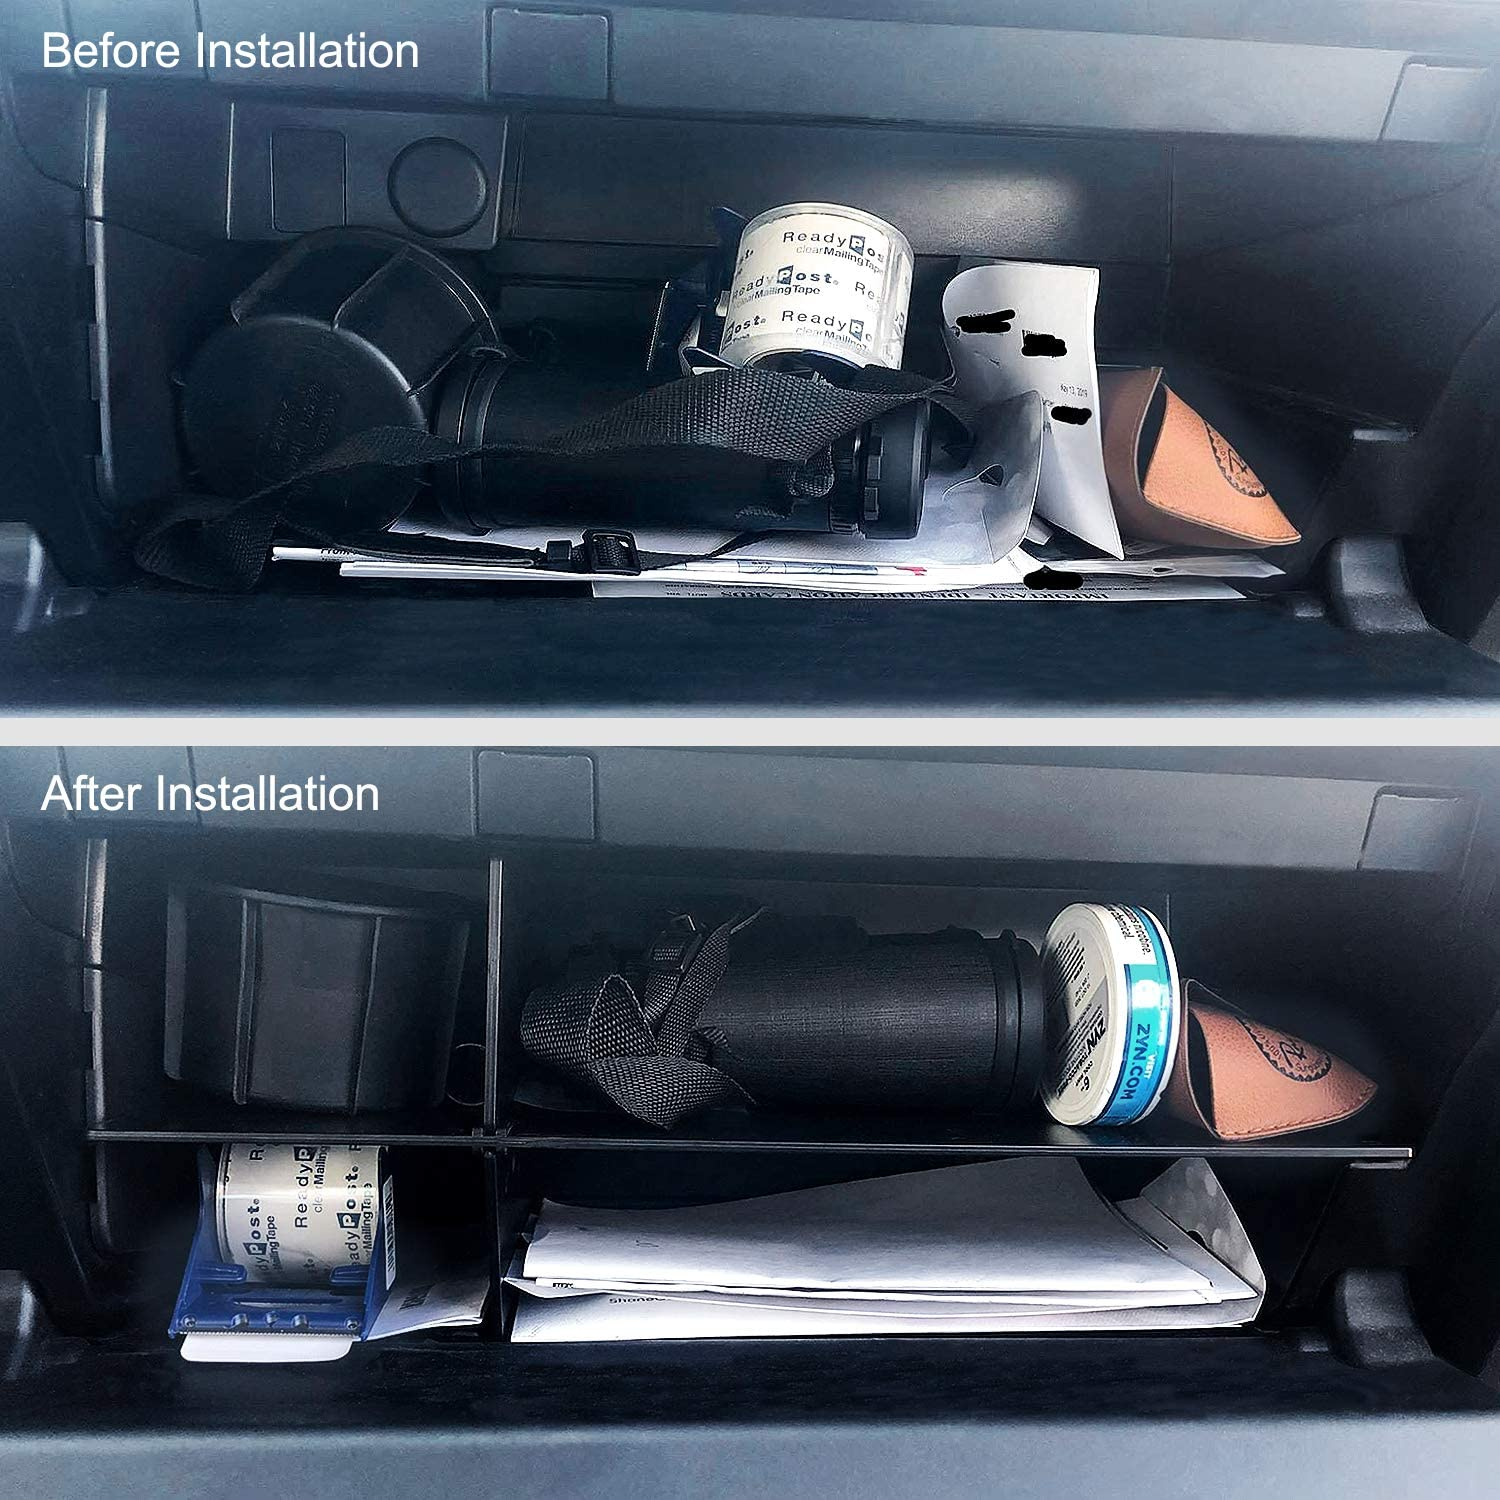 JDMCAR Glove Box Organizer Compatible with Toyota 4Runner Accessories 2010-2020,Insert ABS Black Materials Compartment Tray New Design